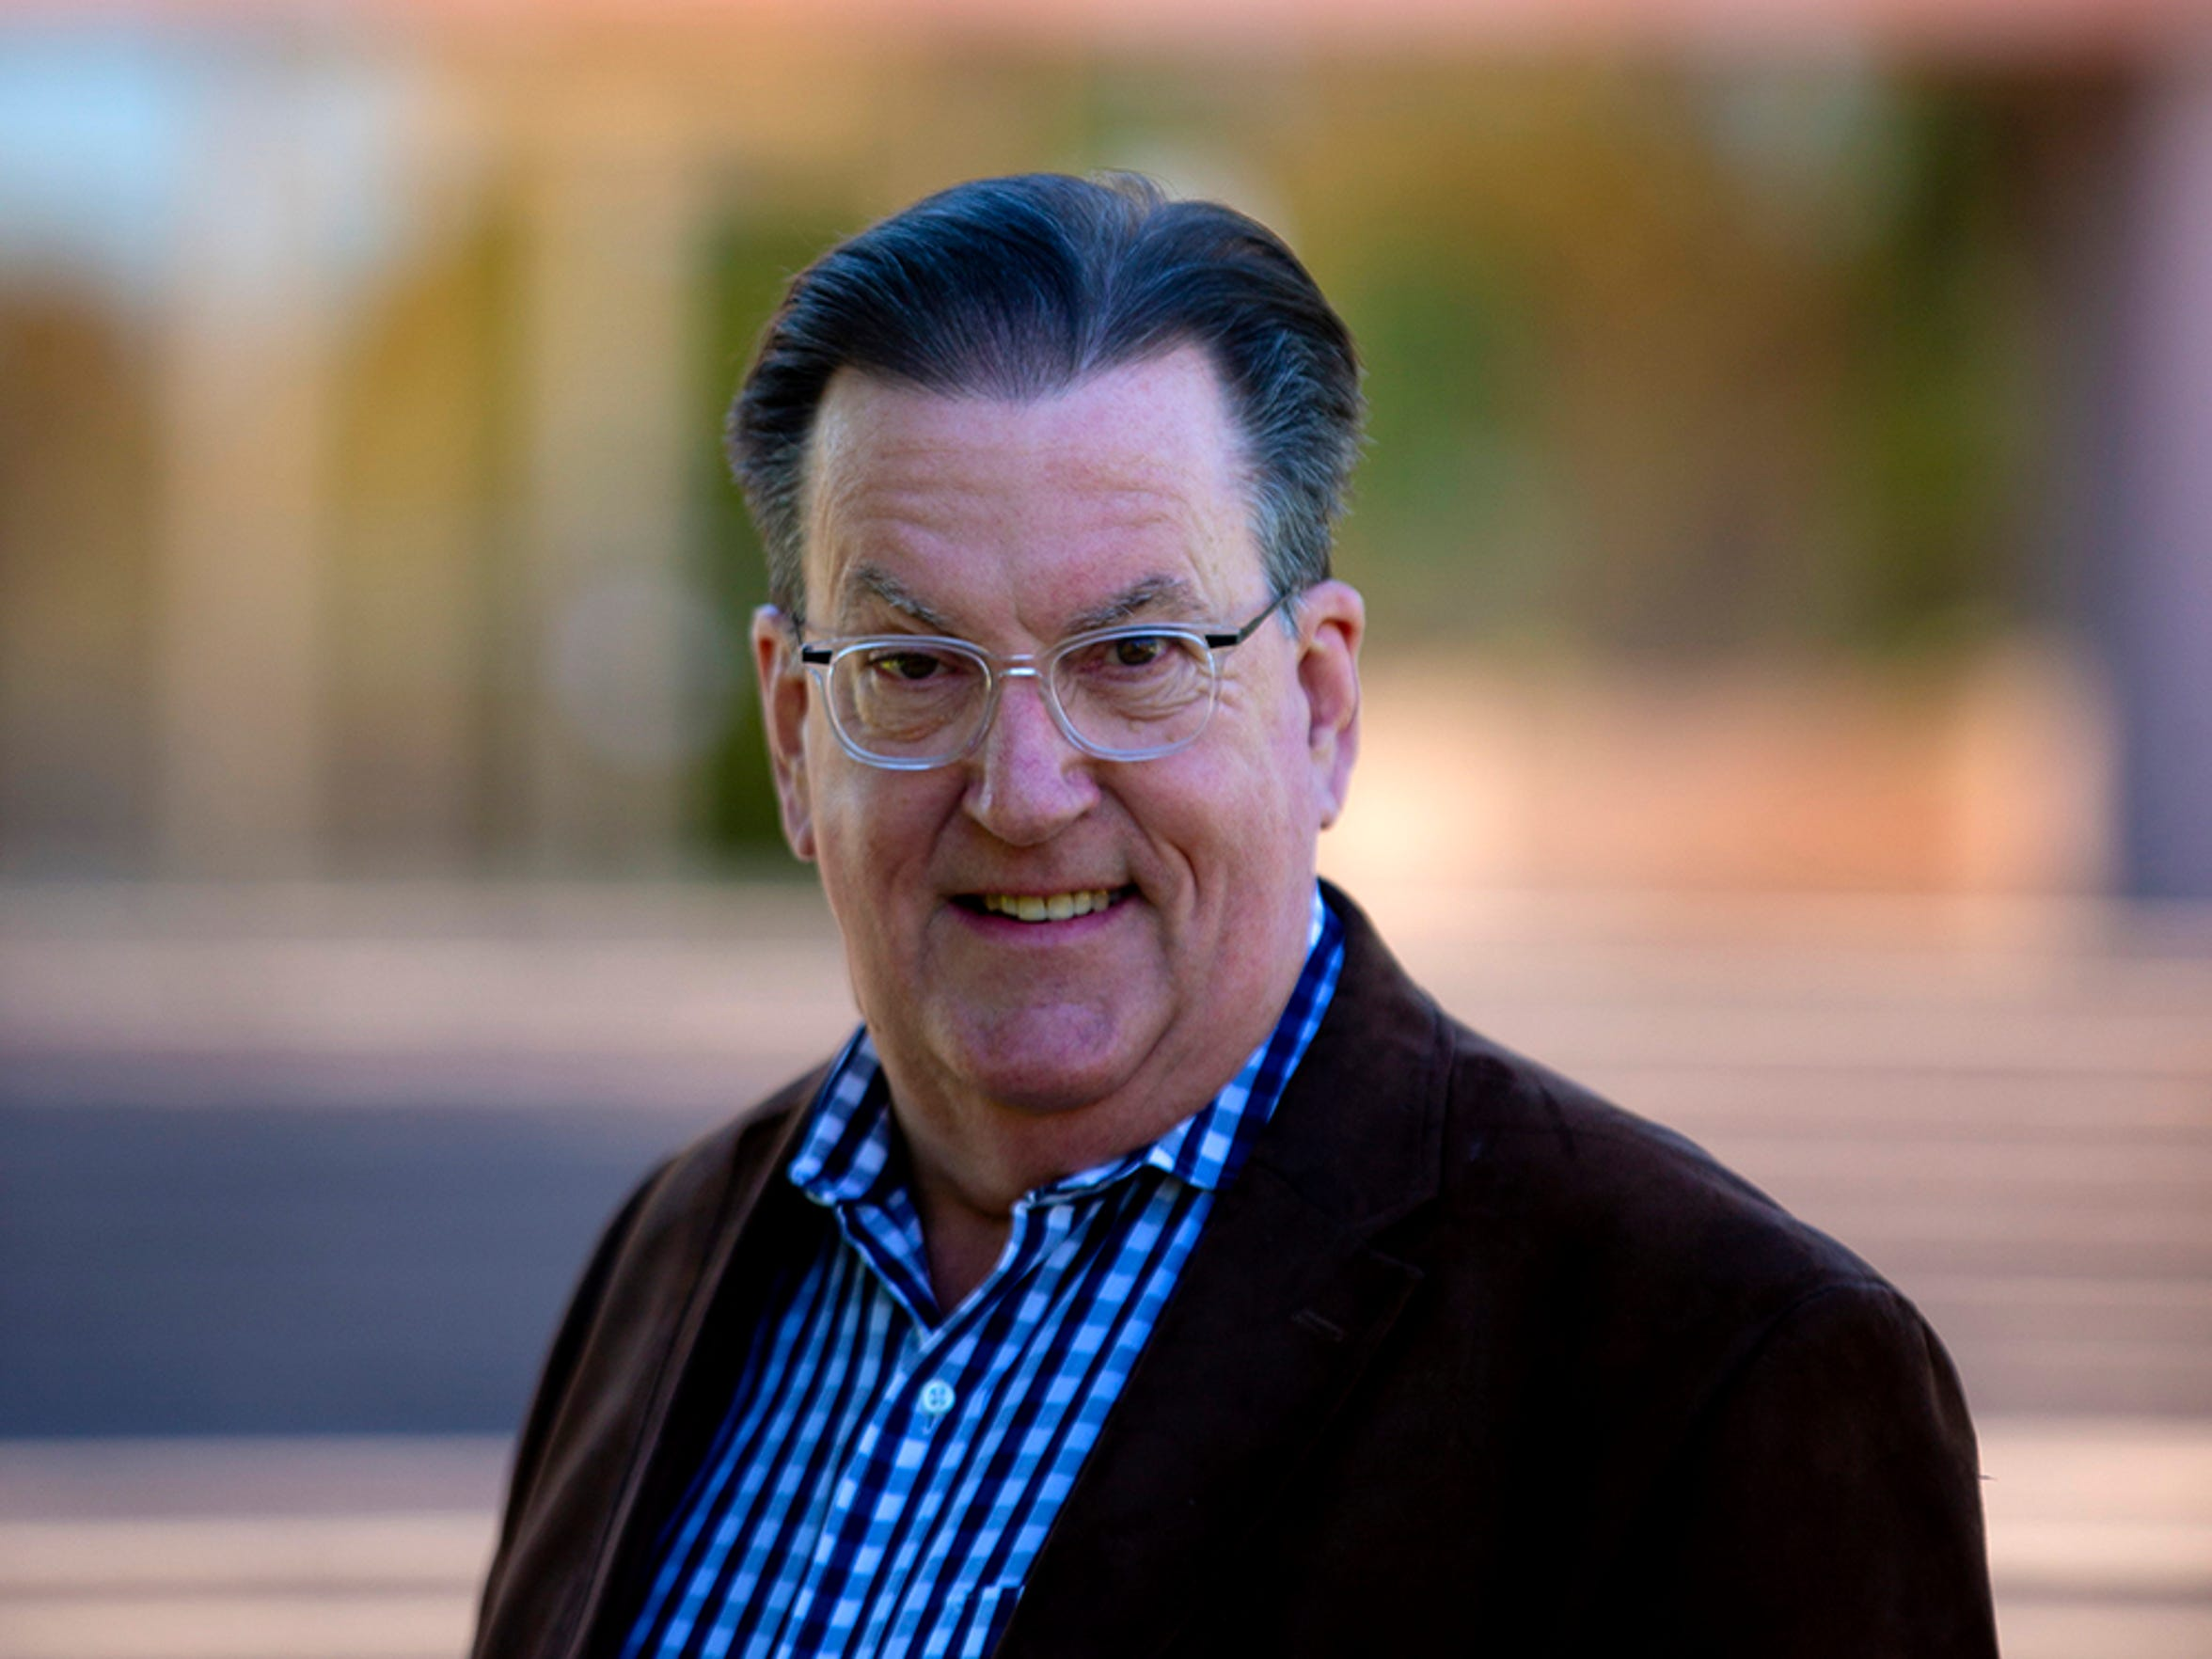 Grady Gammage Jr. outside Gammage Auditorium in Tempe on December 20, 2018.